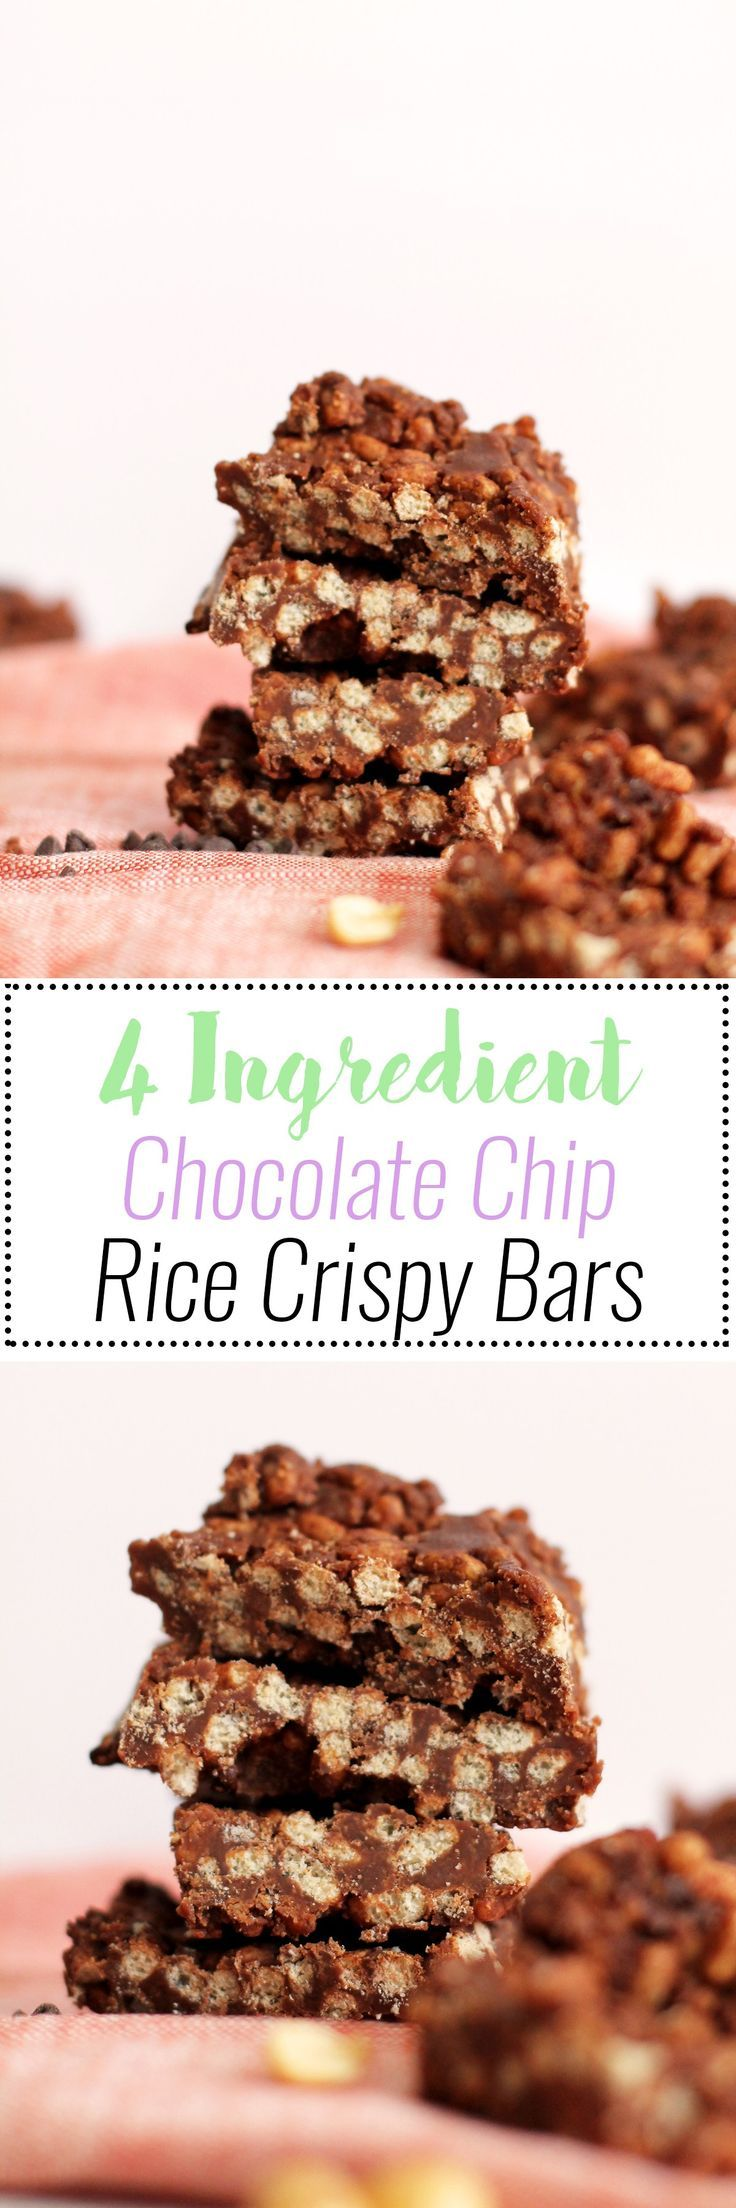 These Chocolate Rice Crispy Bars are four ingredients, full of flavor, and vegan! They come together in under an hour, taste amazing, and are filled with sweetness and chocolate.